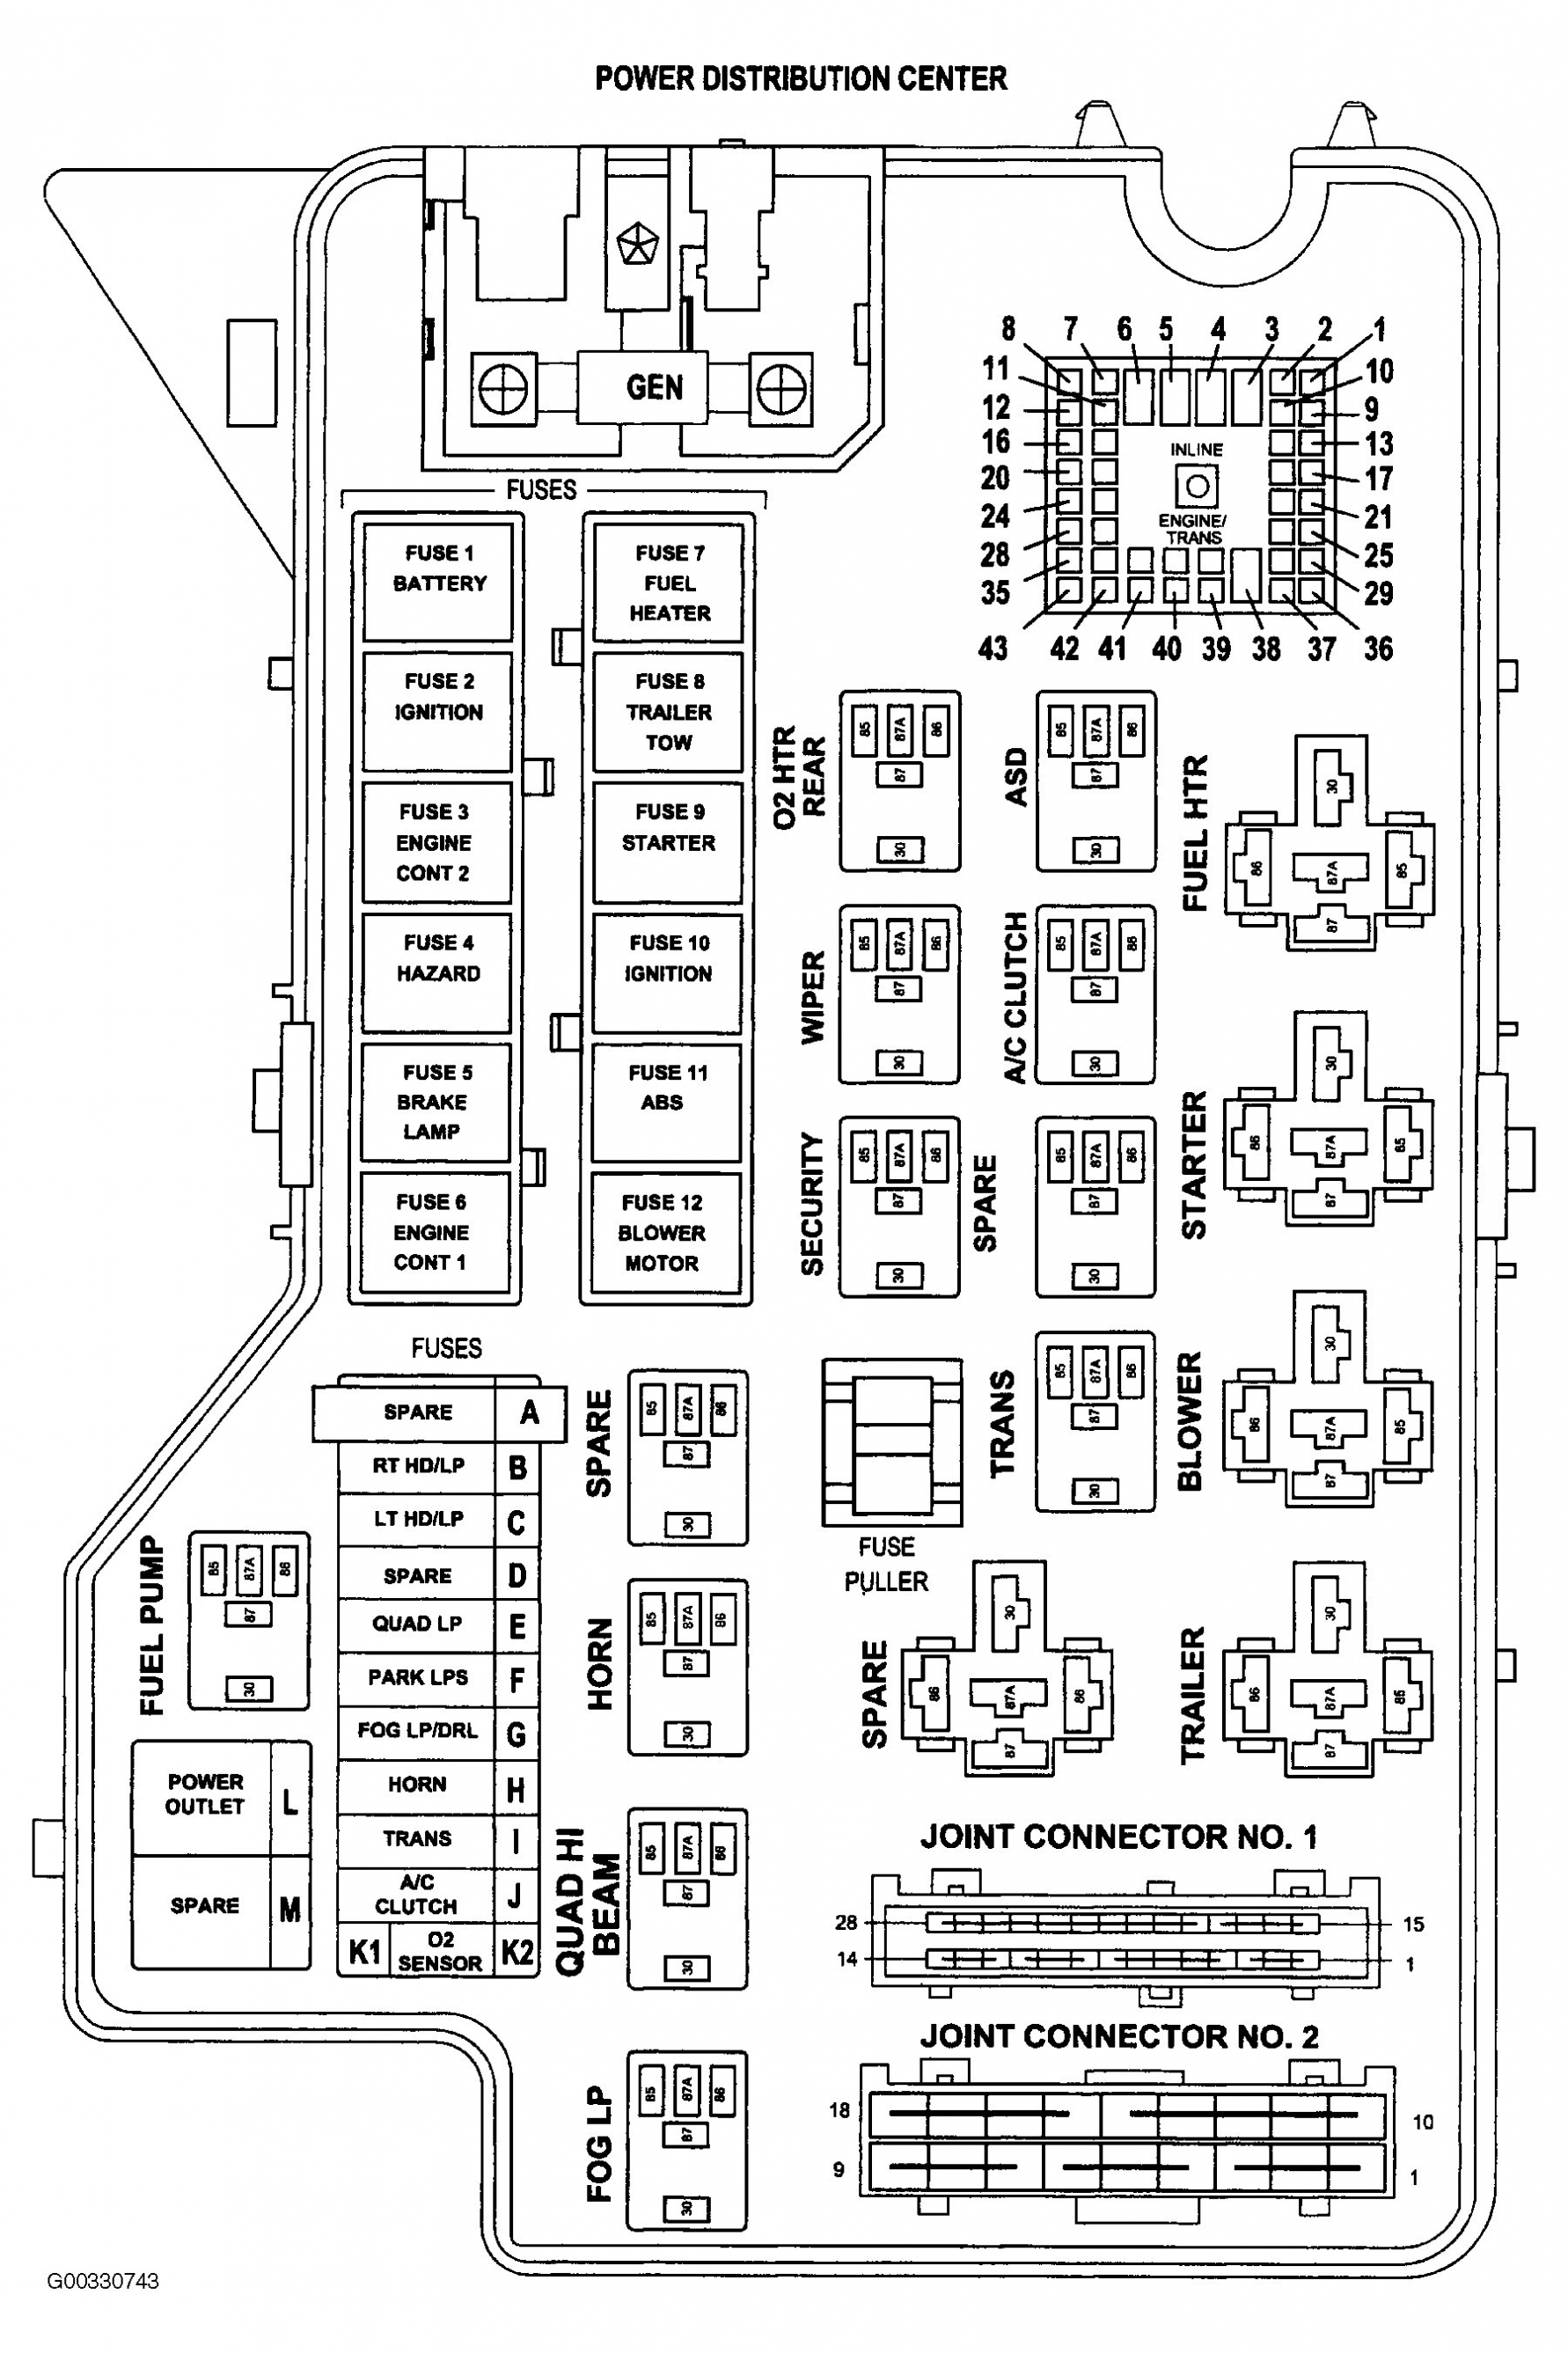 98 Dodge Grand Caravan Wiring Diagram - Wiring Diagram ...